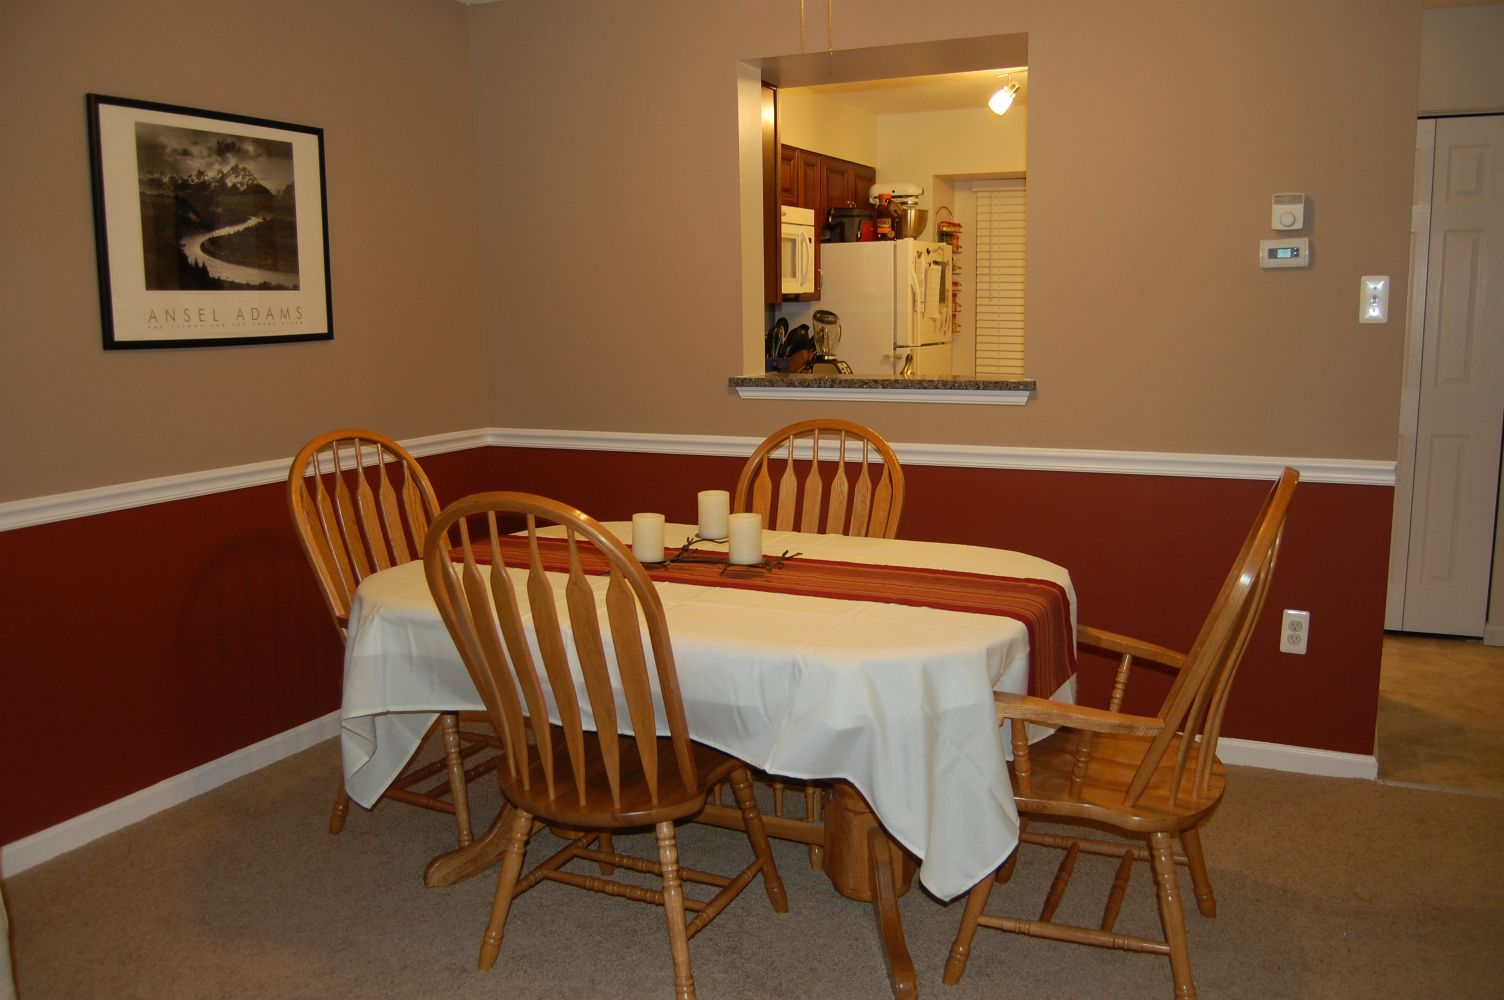 chair rail in dining room | Dining Rooms with Chair Rails ...